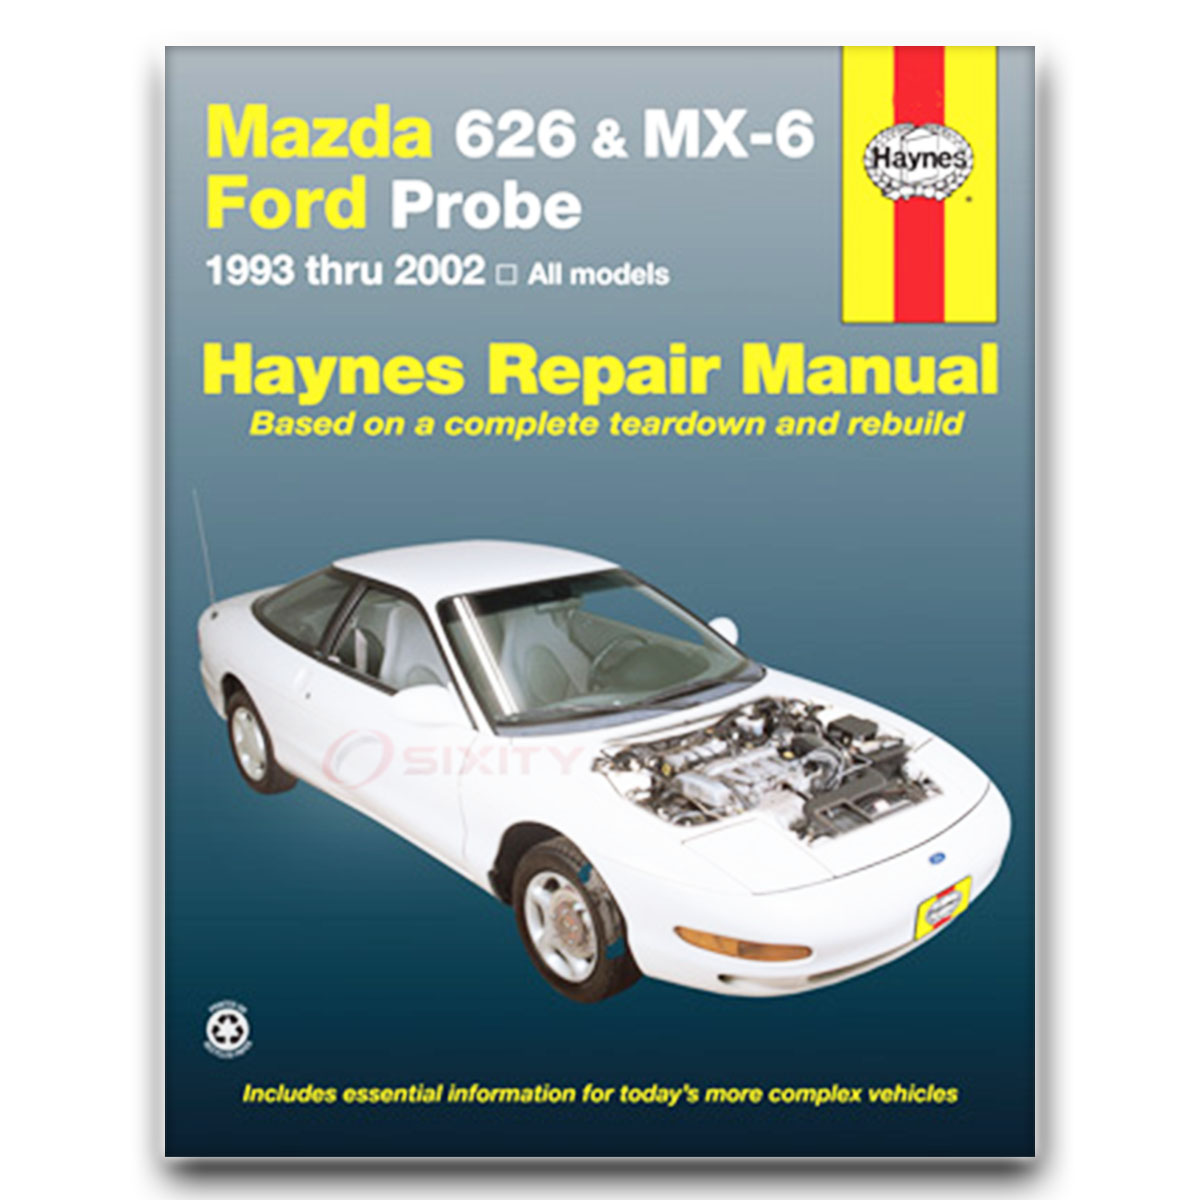 Haynes Repair Manual For 1993-2002 Mazda 626